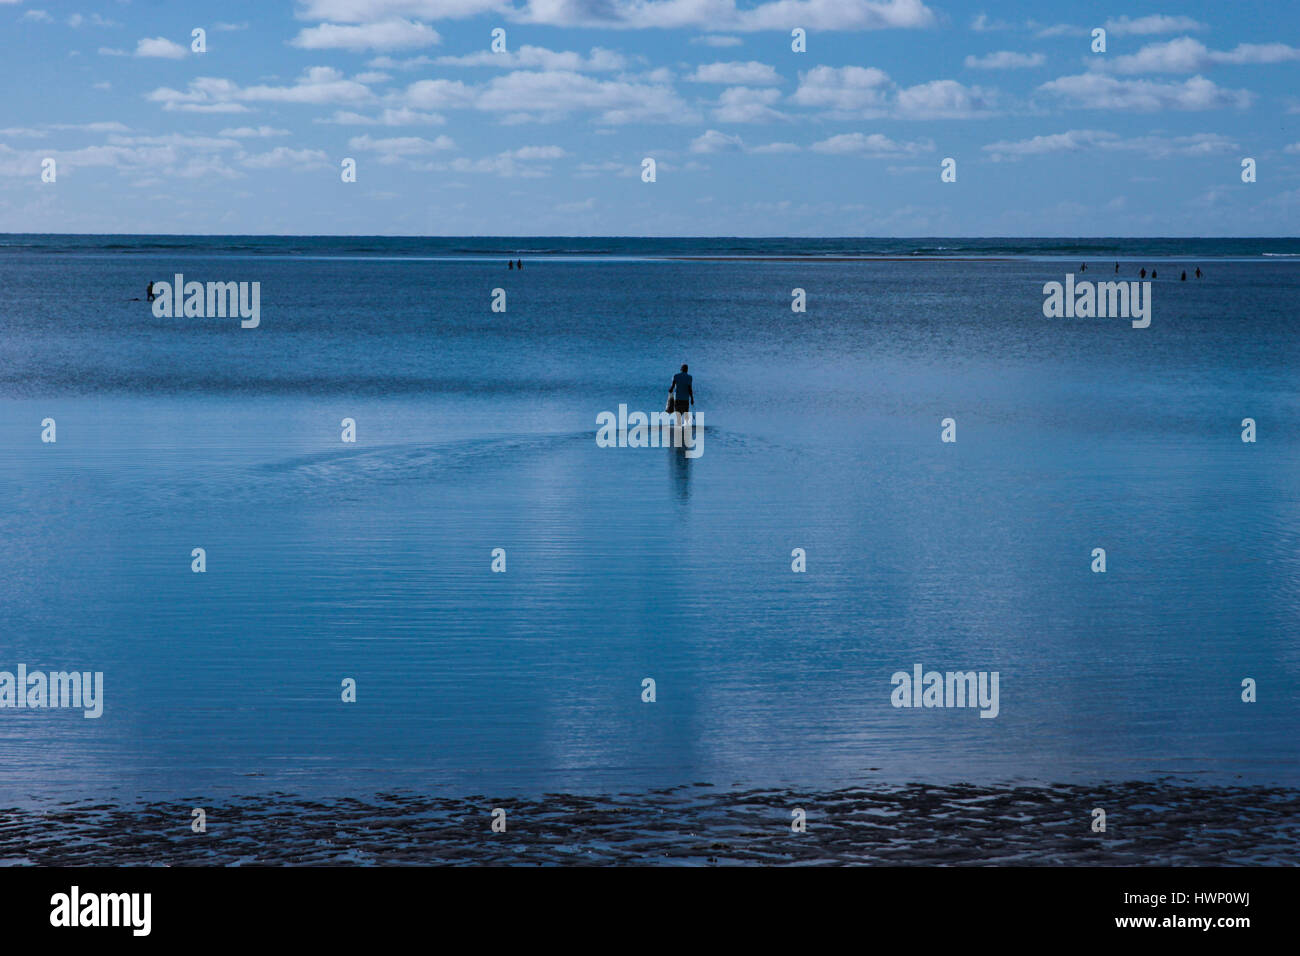 Beach Vacations: Patacho Beach, Alagoas, Brazil, considered one of the most beautiful beaches in Brazil- Fisherman in the background. Stock Photo